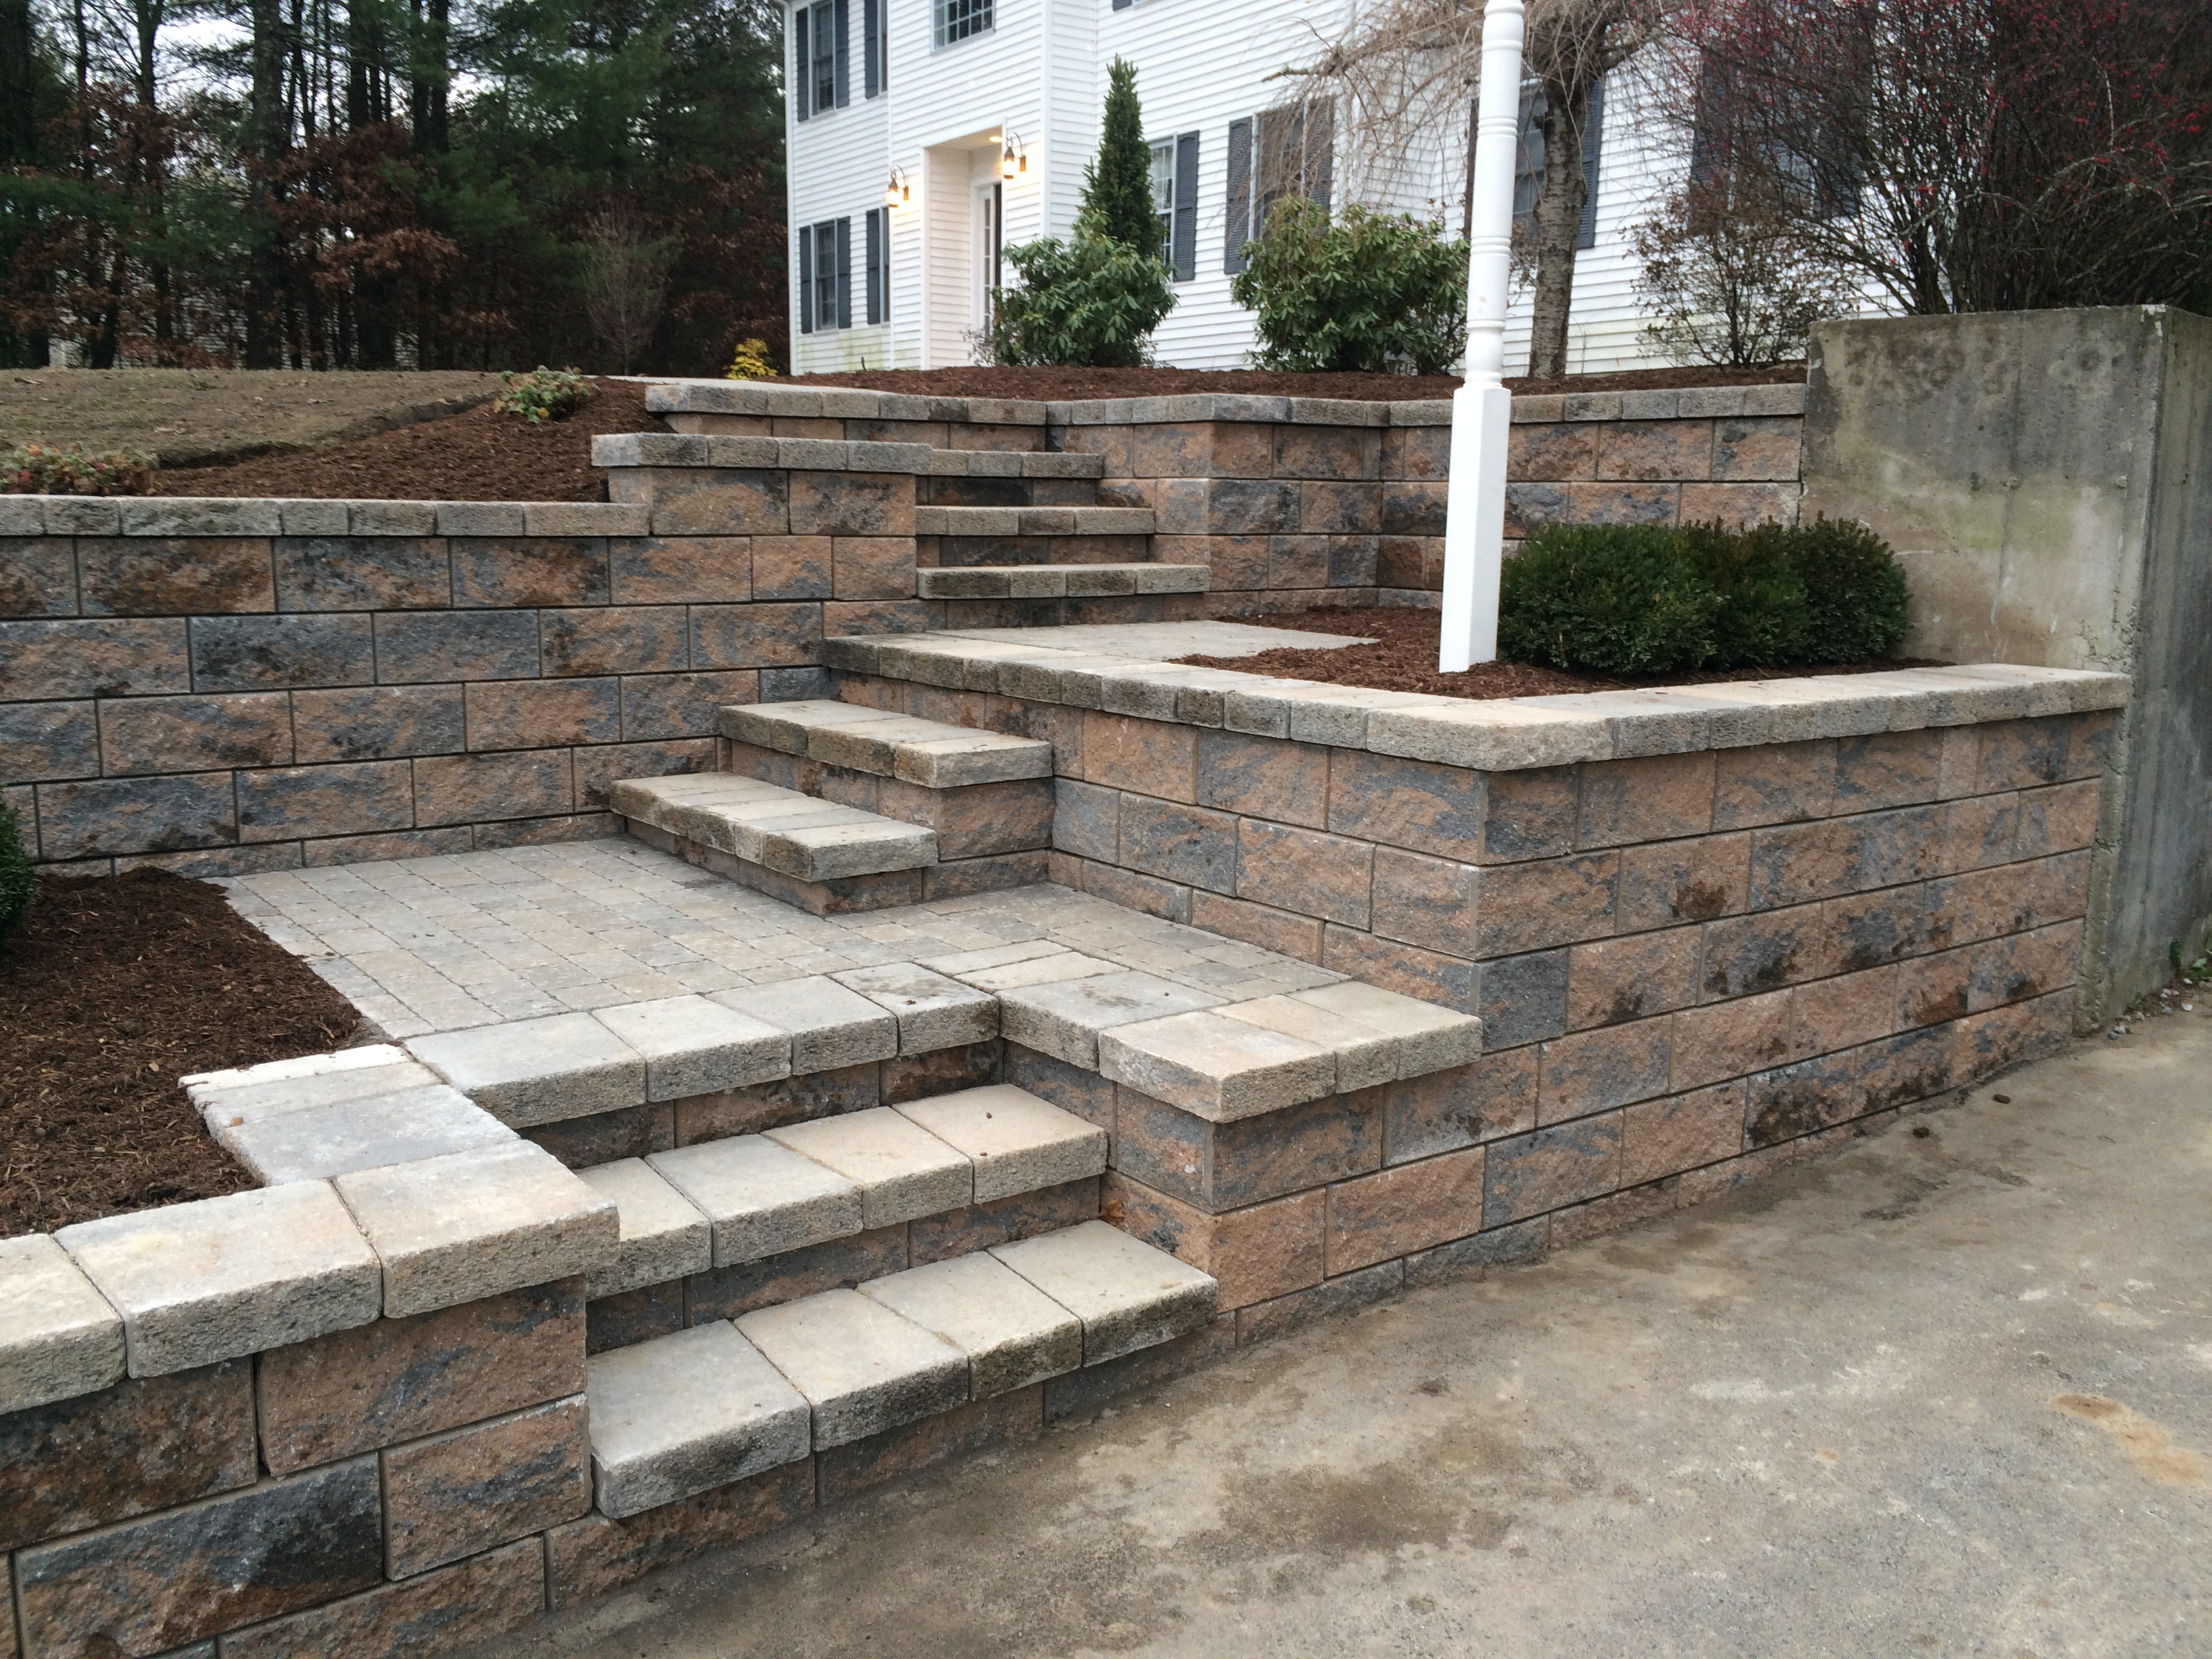 Outdoor Fireplaces Fire Pits Custom Gas Fire Pits Home Fireplaces Firepits Outdoor Best